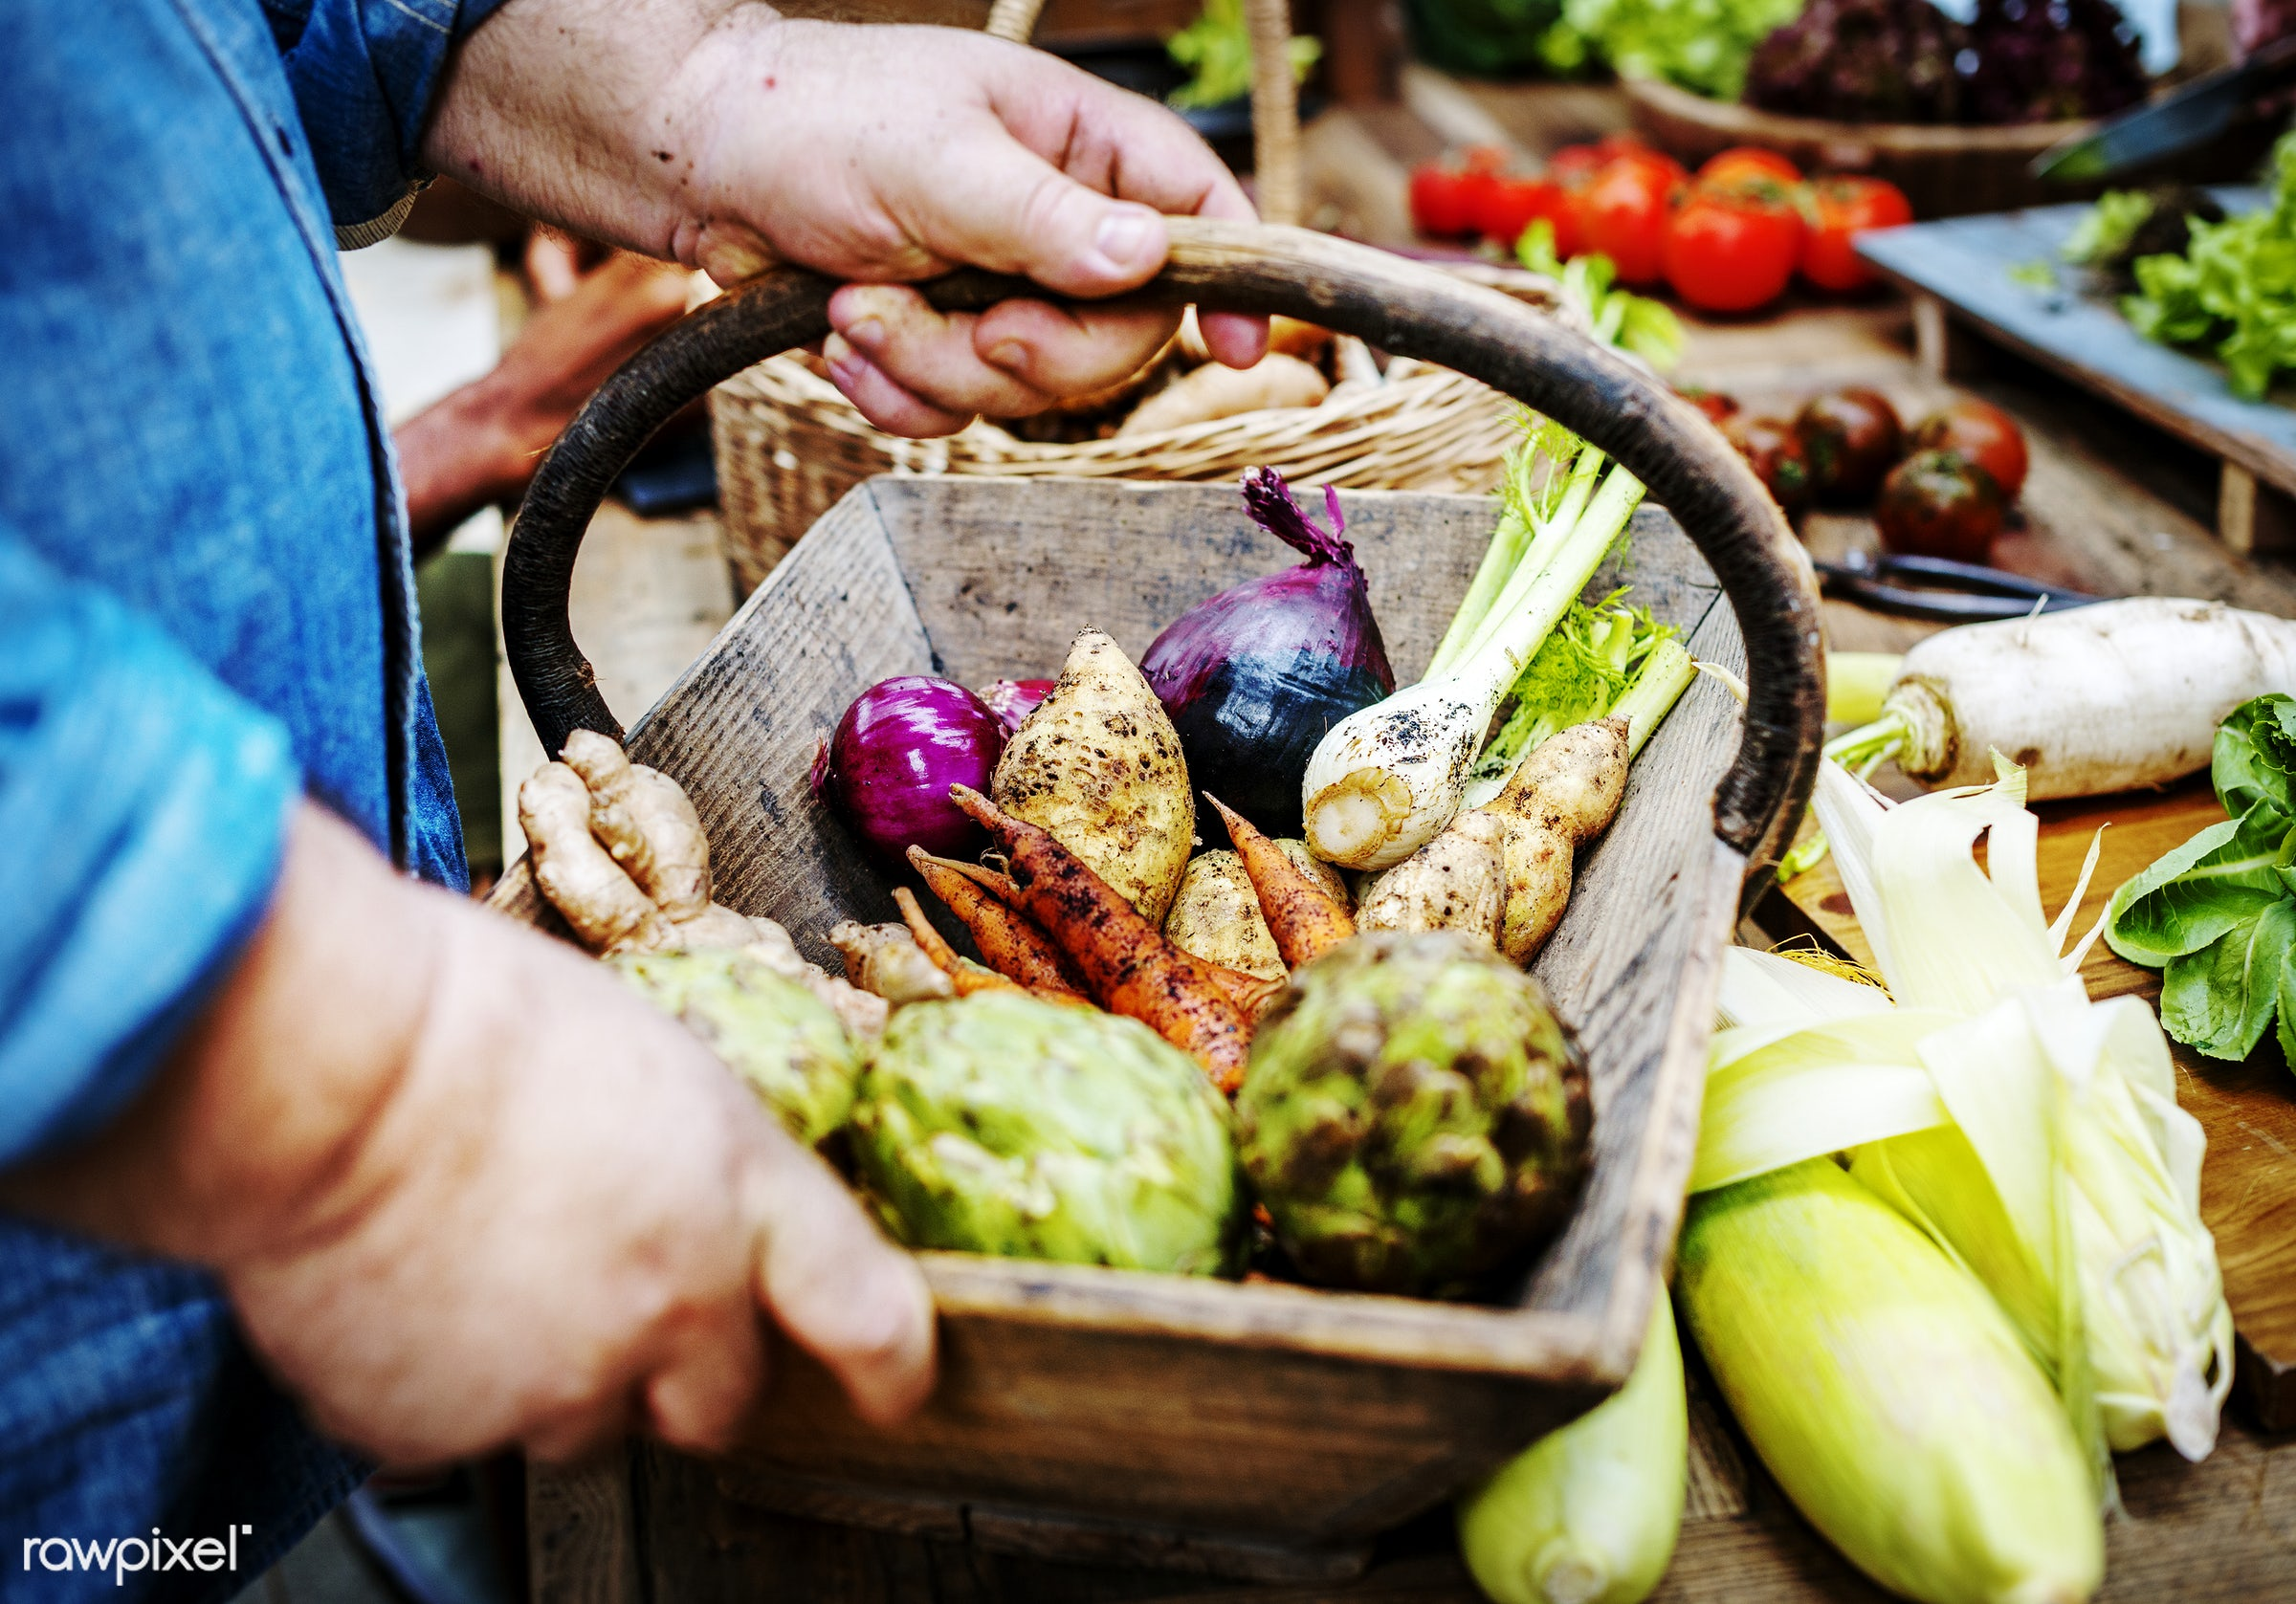 raw, diverse, herbs, farm, ingredients, farmer, nature, fresh, hands, products, agriculture, variety, organic, market, food...